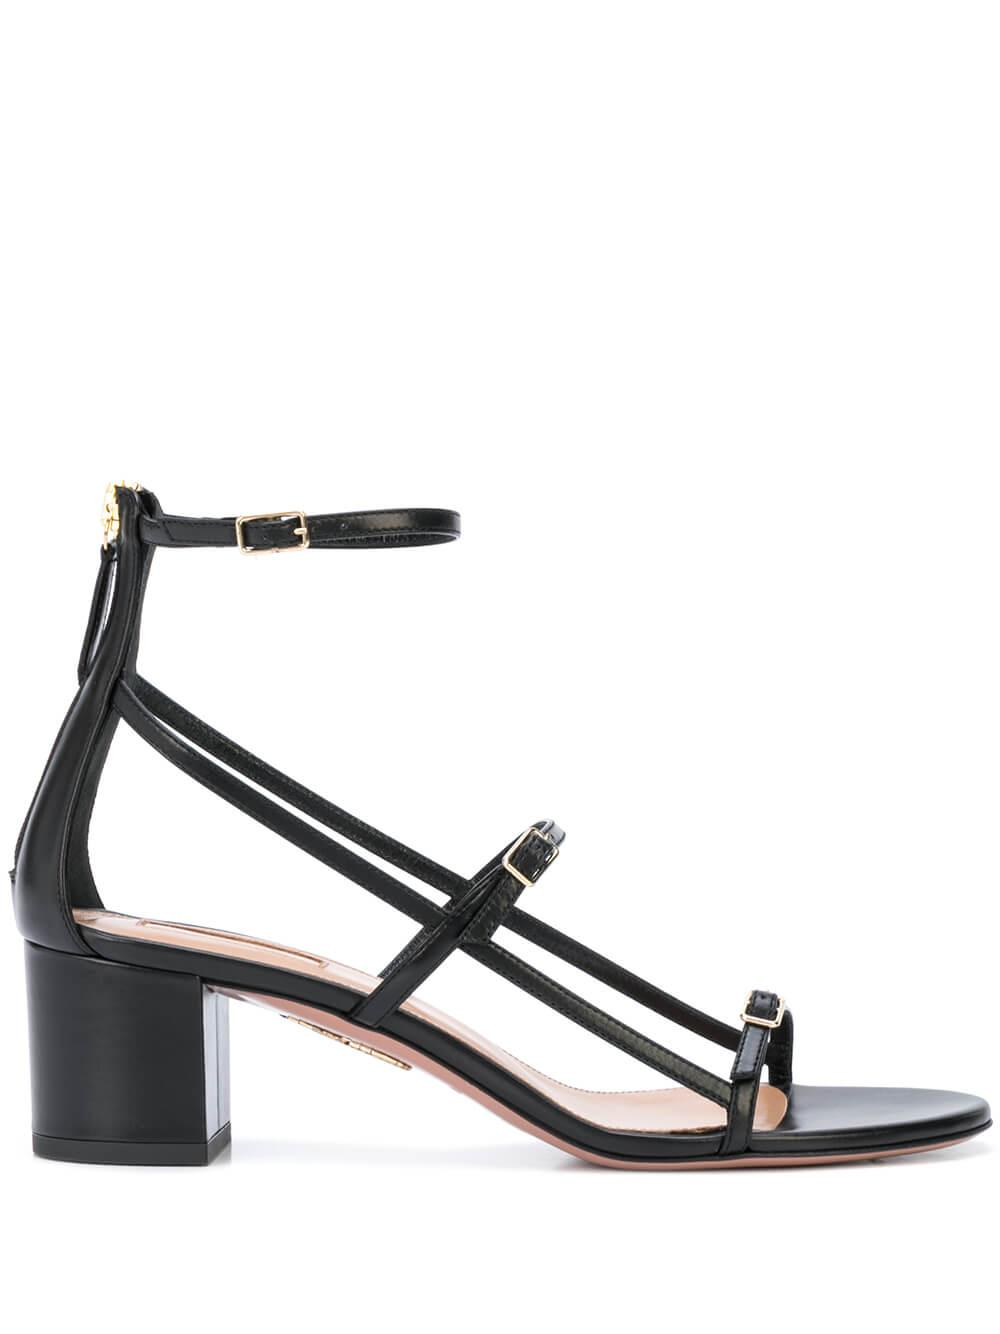 Super Model 50MM Block Heel Leather Sandal